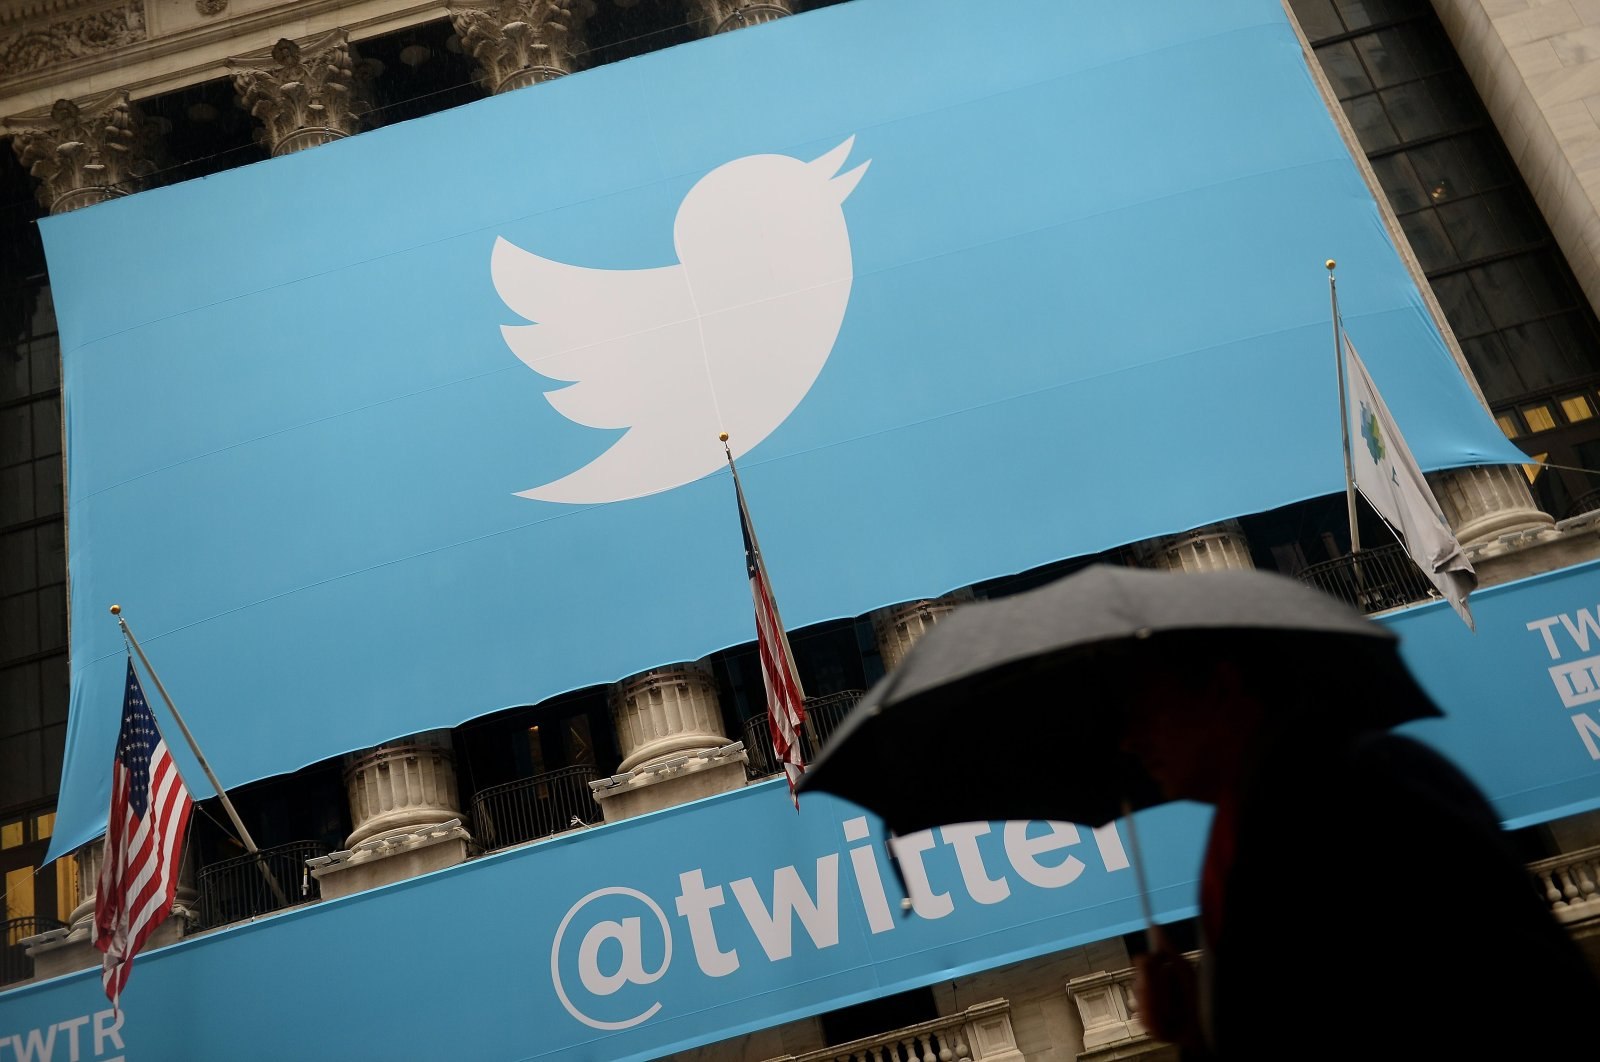 A banner with the logo of Twitter is set on the front of the New York Stock Exchange (NYSE) in New York, Nov. 7, 2013 (AFP File Photo)